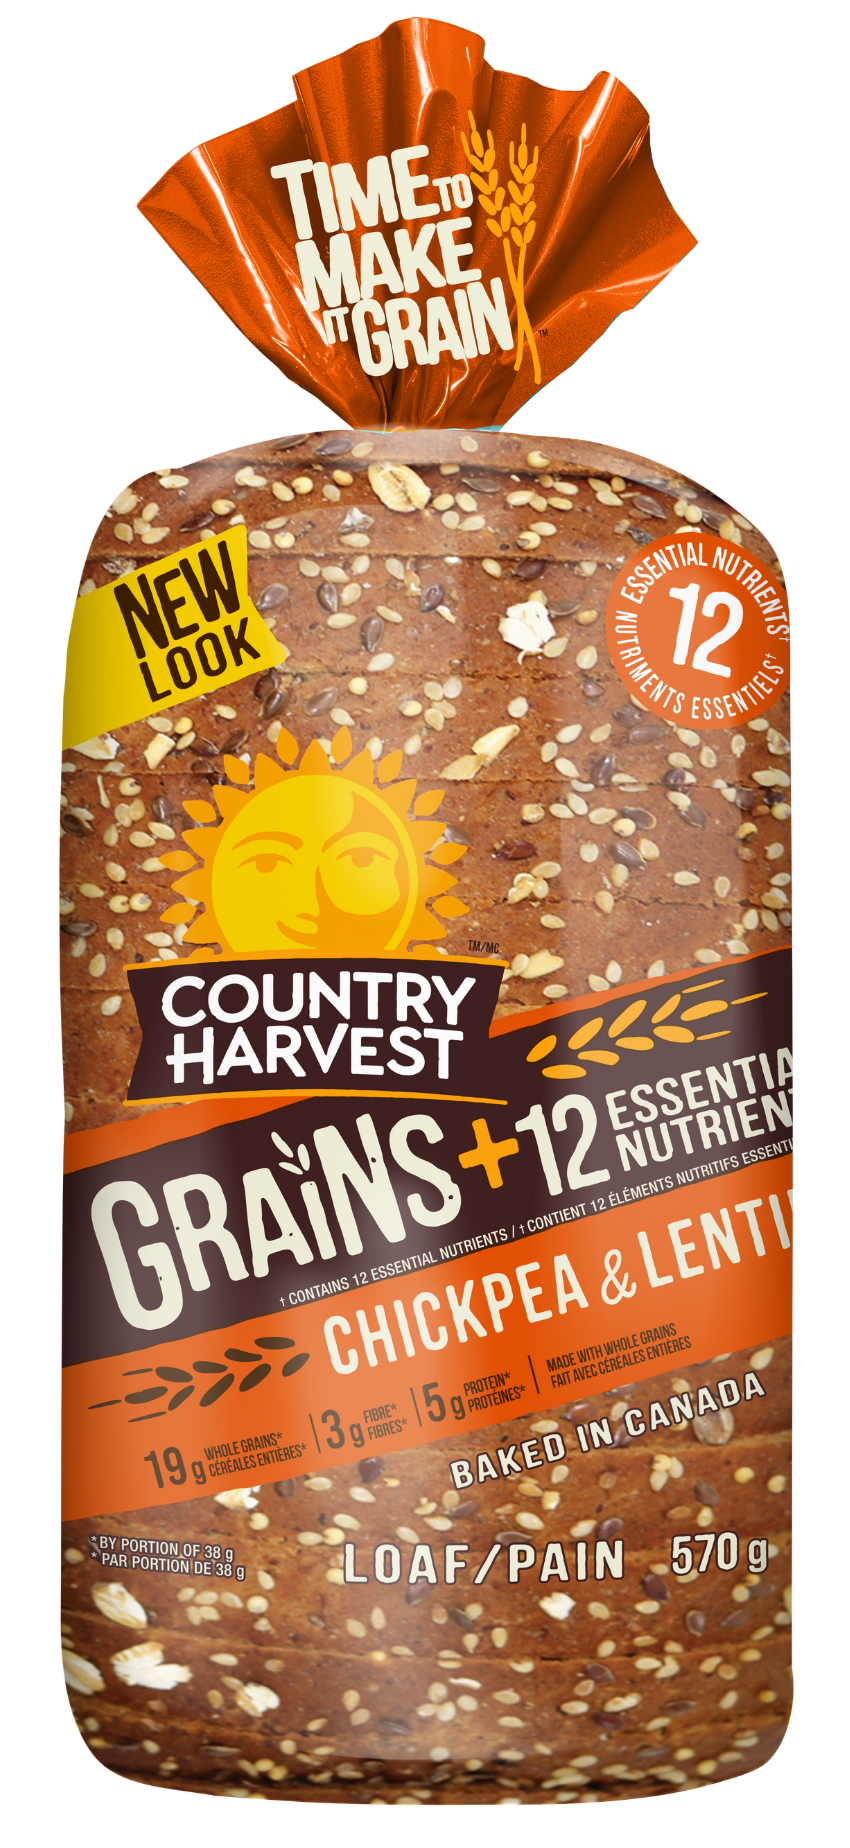 Country-Harvest-Chickpea-and-Lentil-English-Package